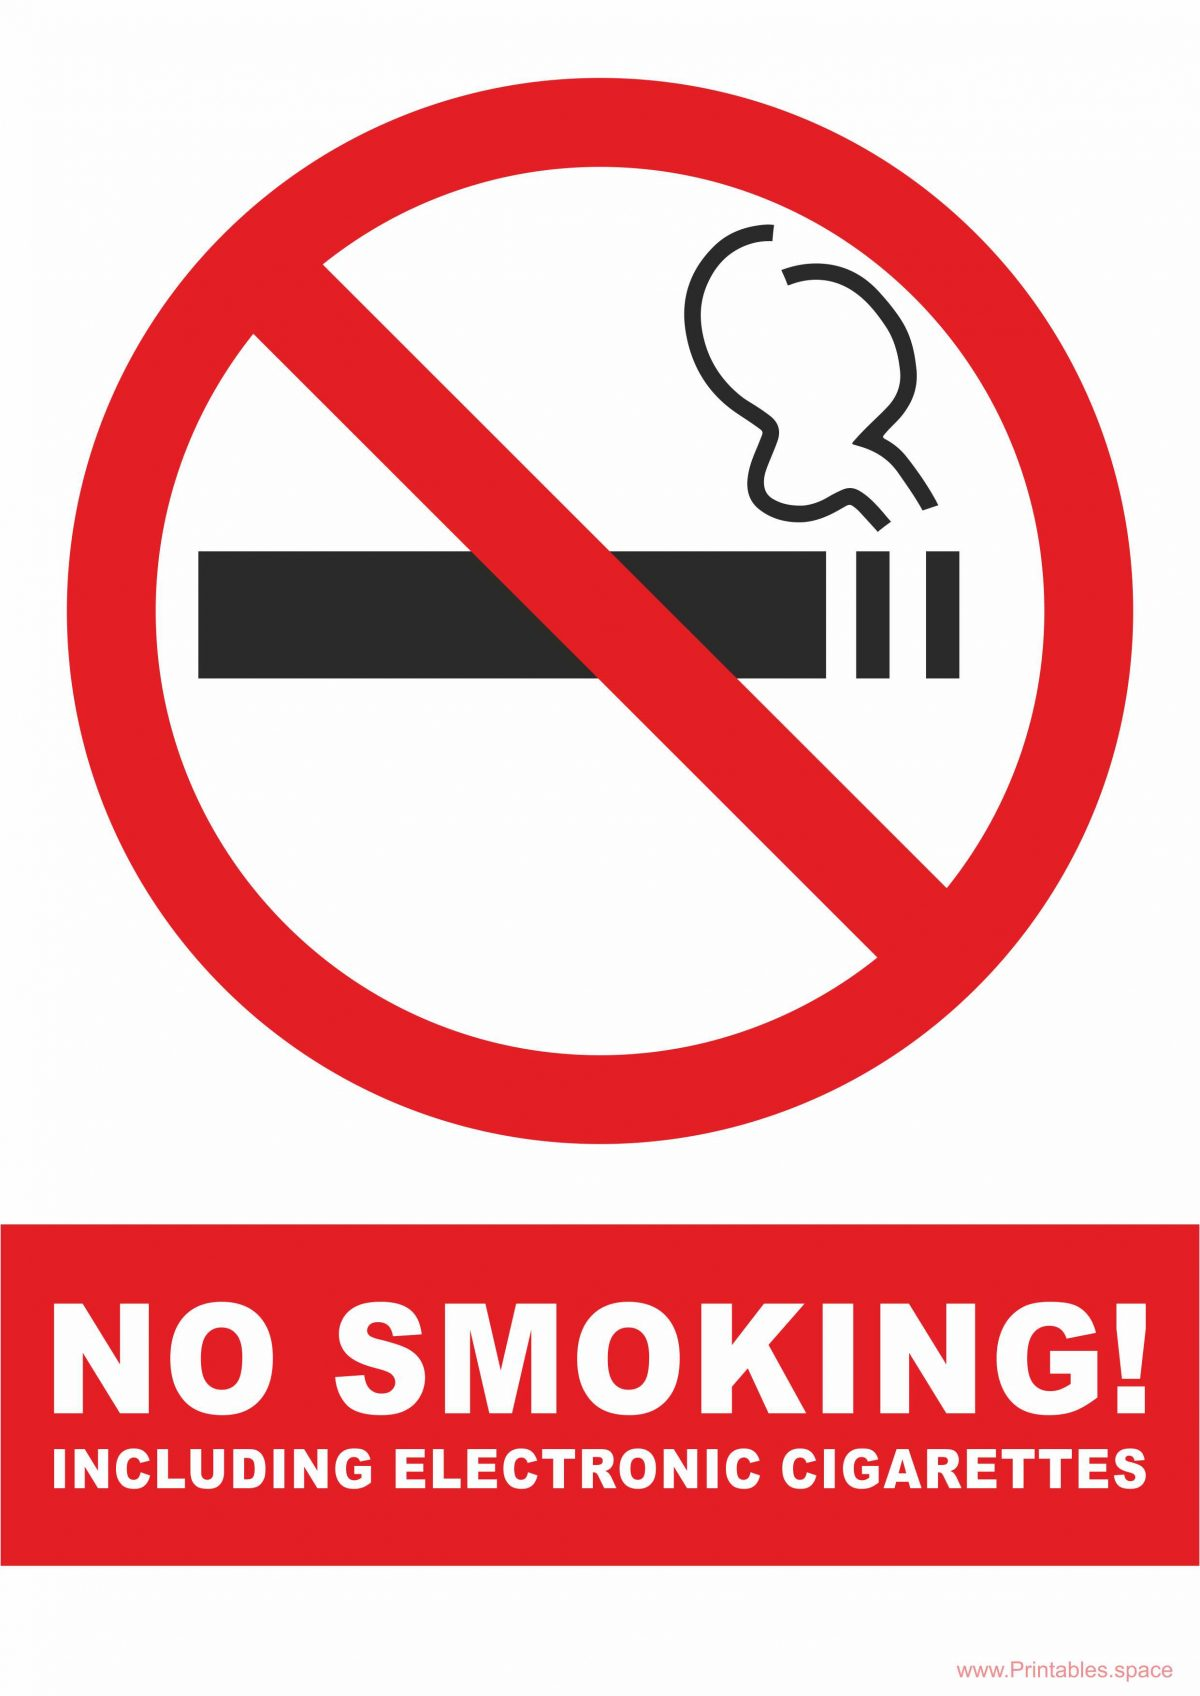 No Smoking Including Electronic Cigarettes Sign